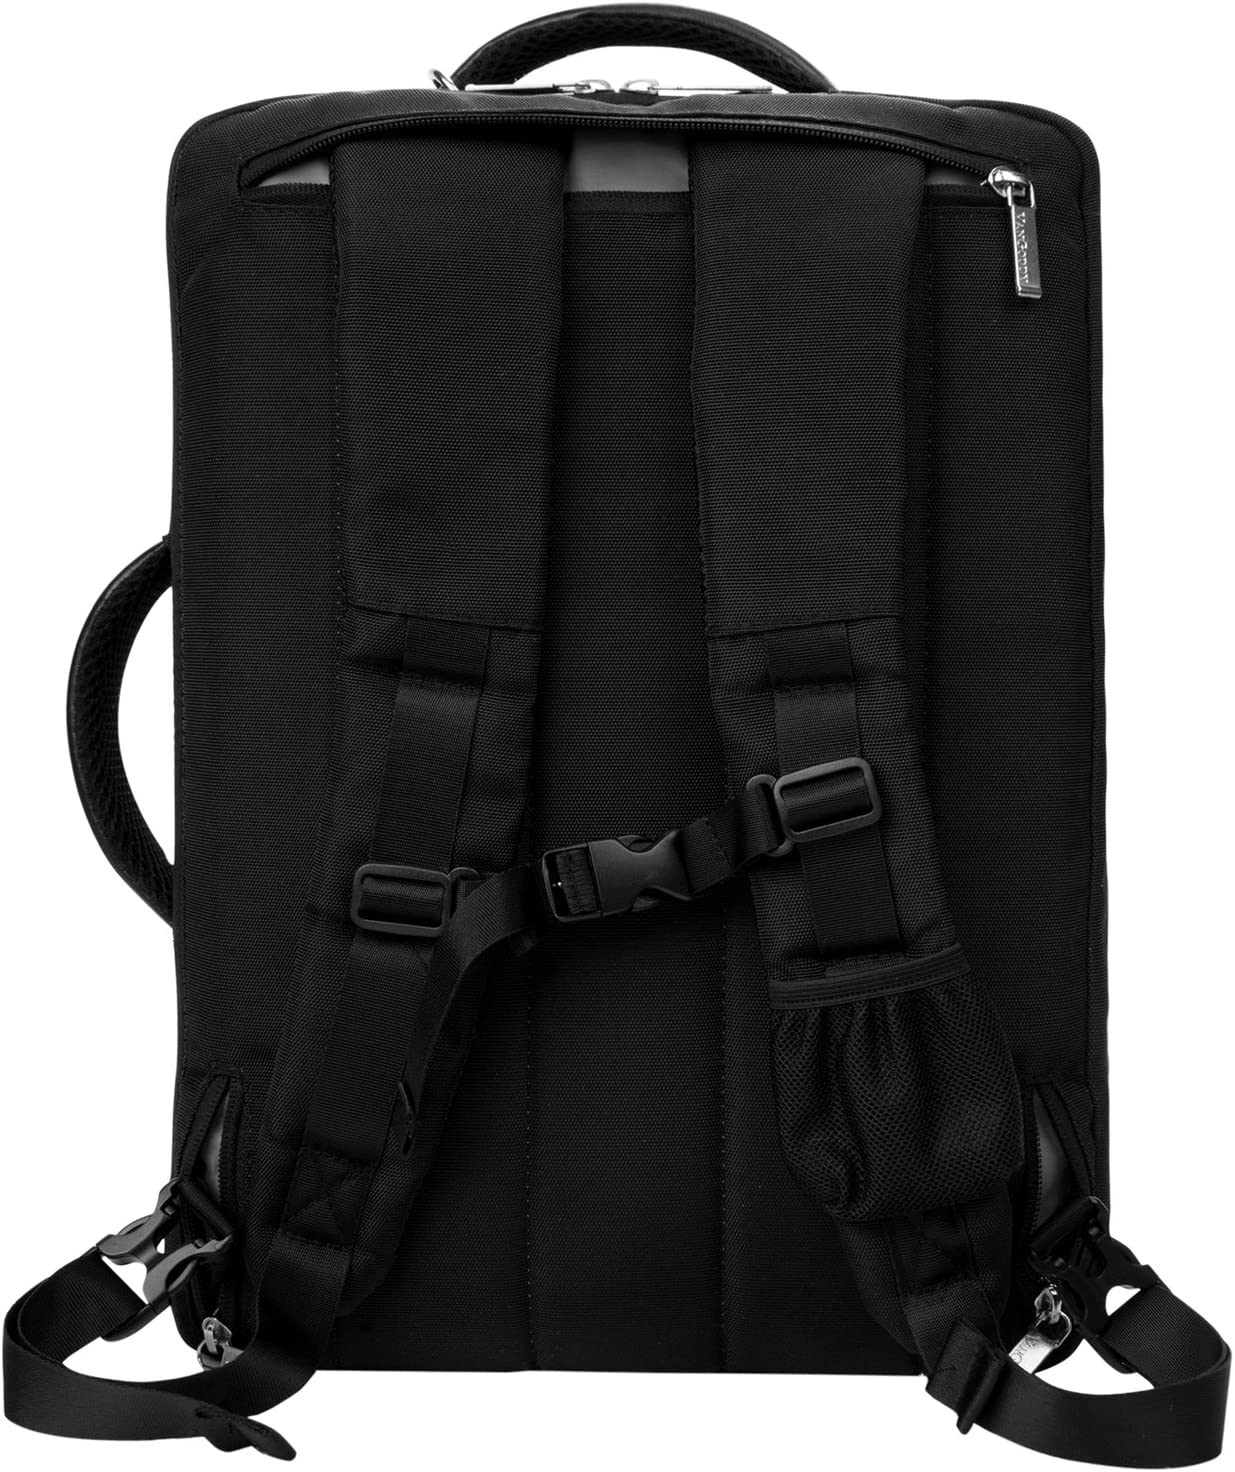 Black Convertible Laptop Messenger Bag for 14 to 15.6 inch Laptops NoteBooks Portable Monitors